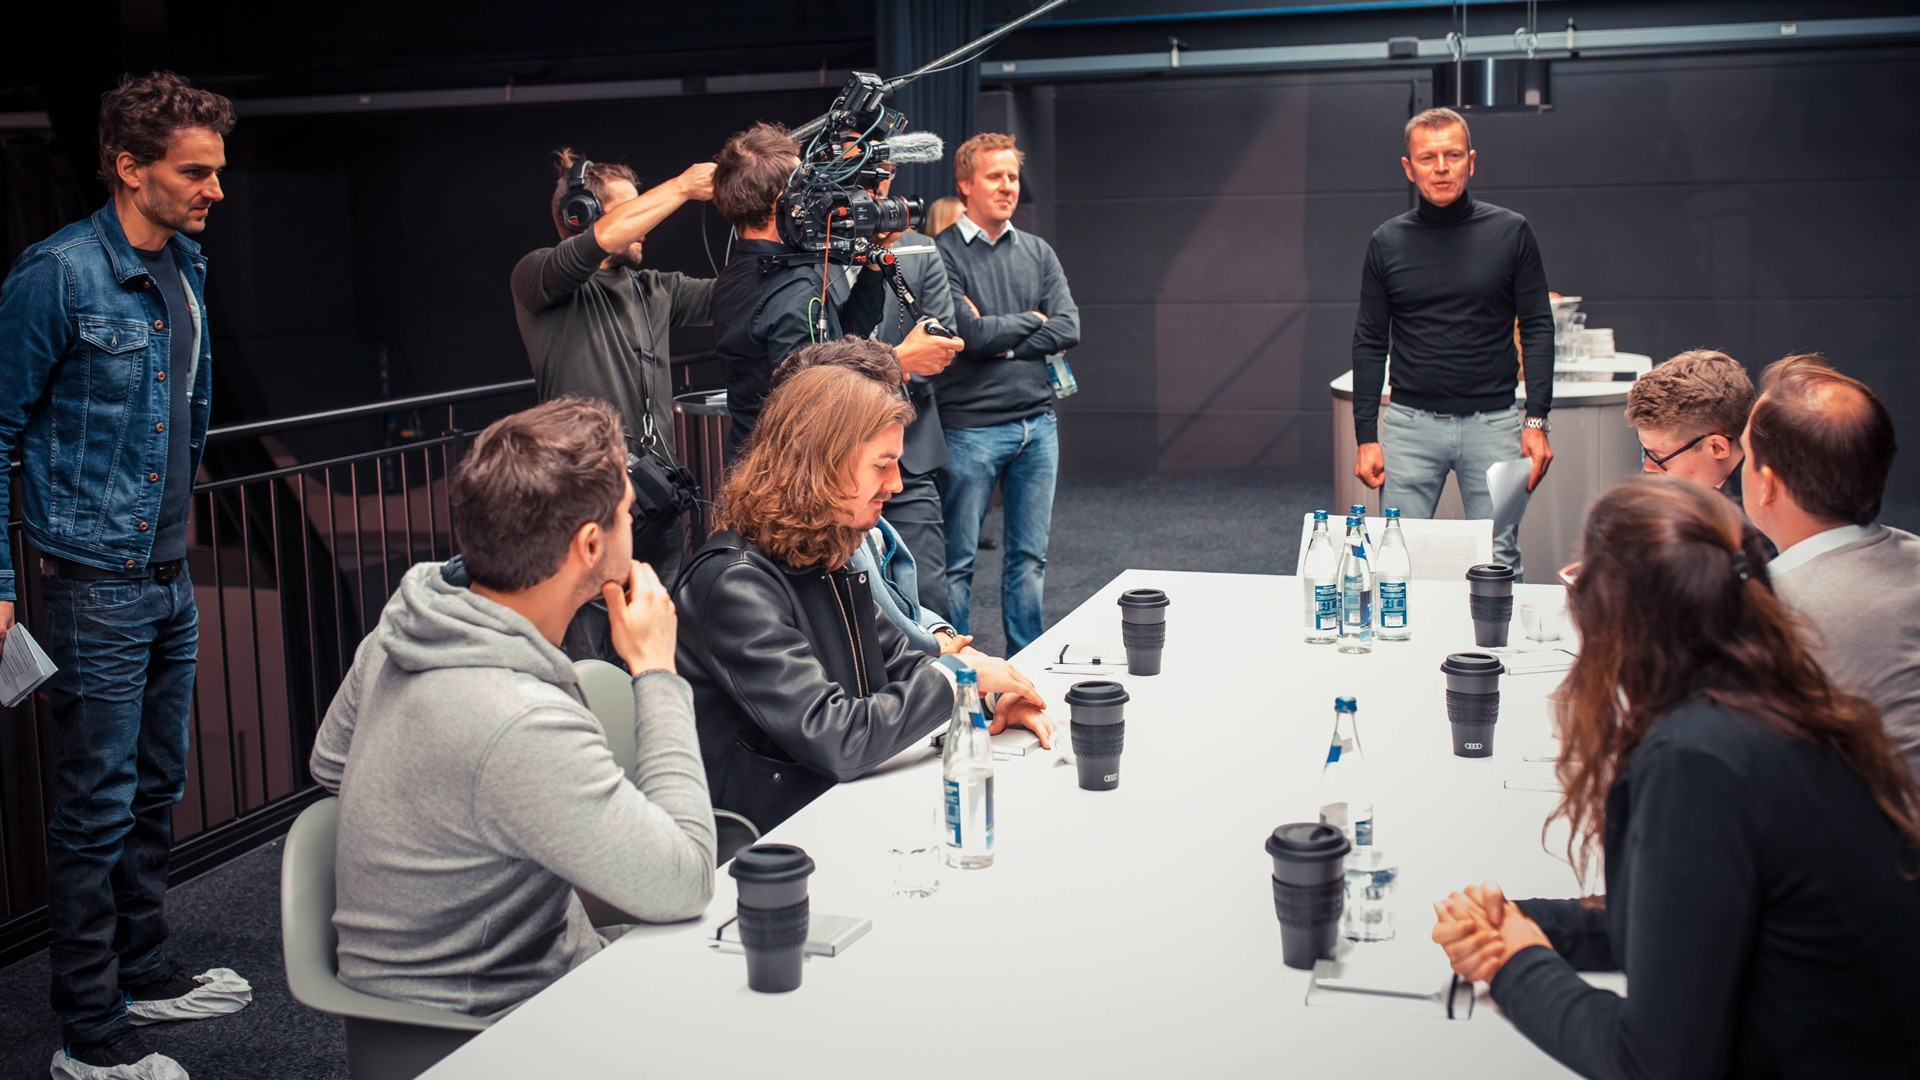 Audi A6 Film Contest — participants and experts enjoy a coffee together